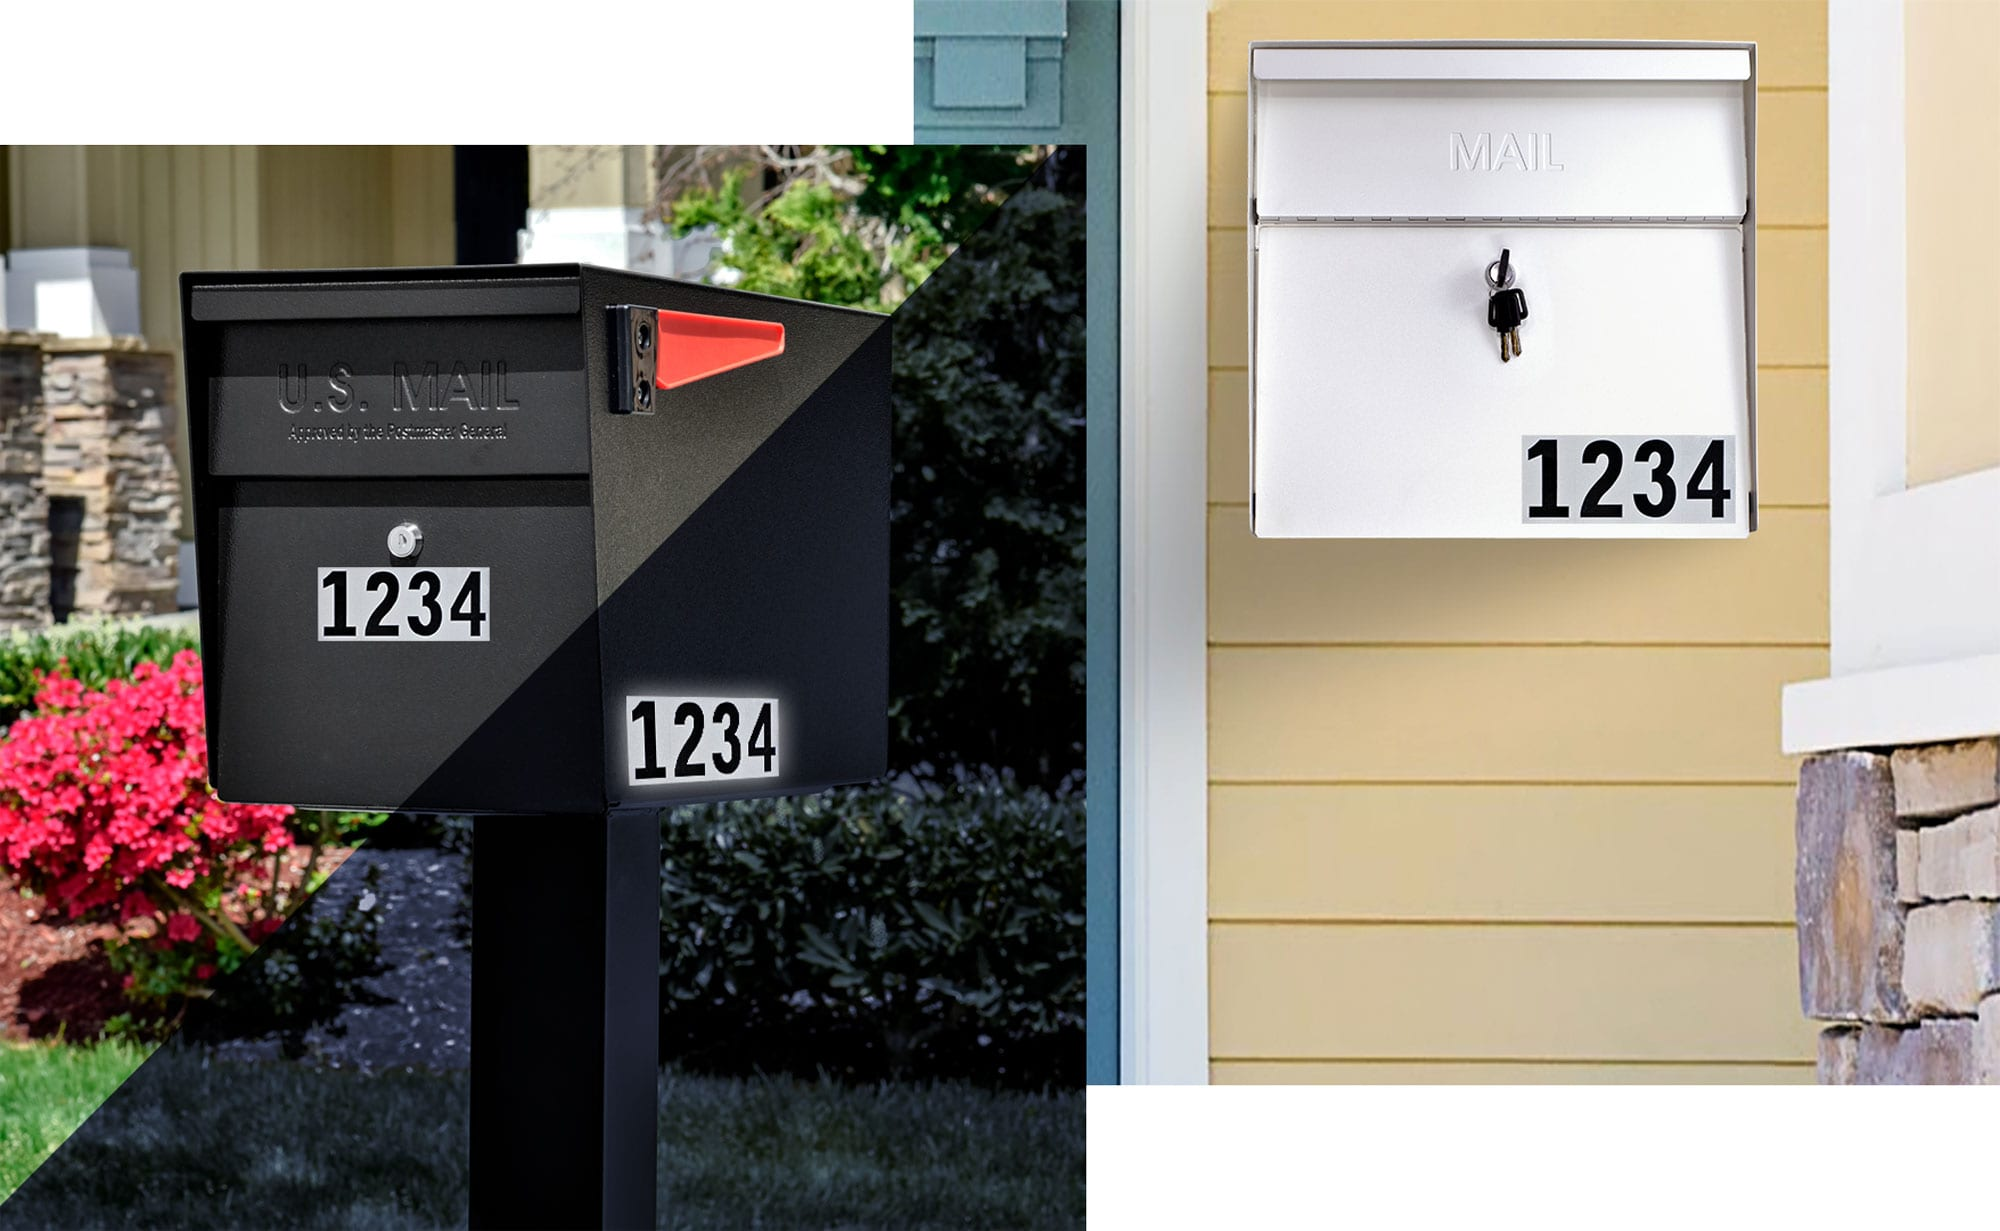 Reflective house numbers for mailbox, address numbers for mailbox outside Modern Architectural Epoch Design epic mailbox